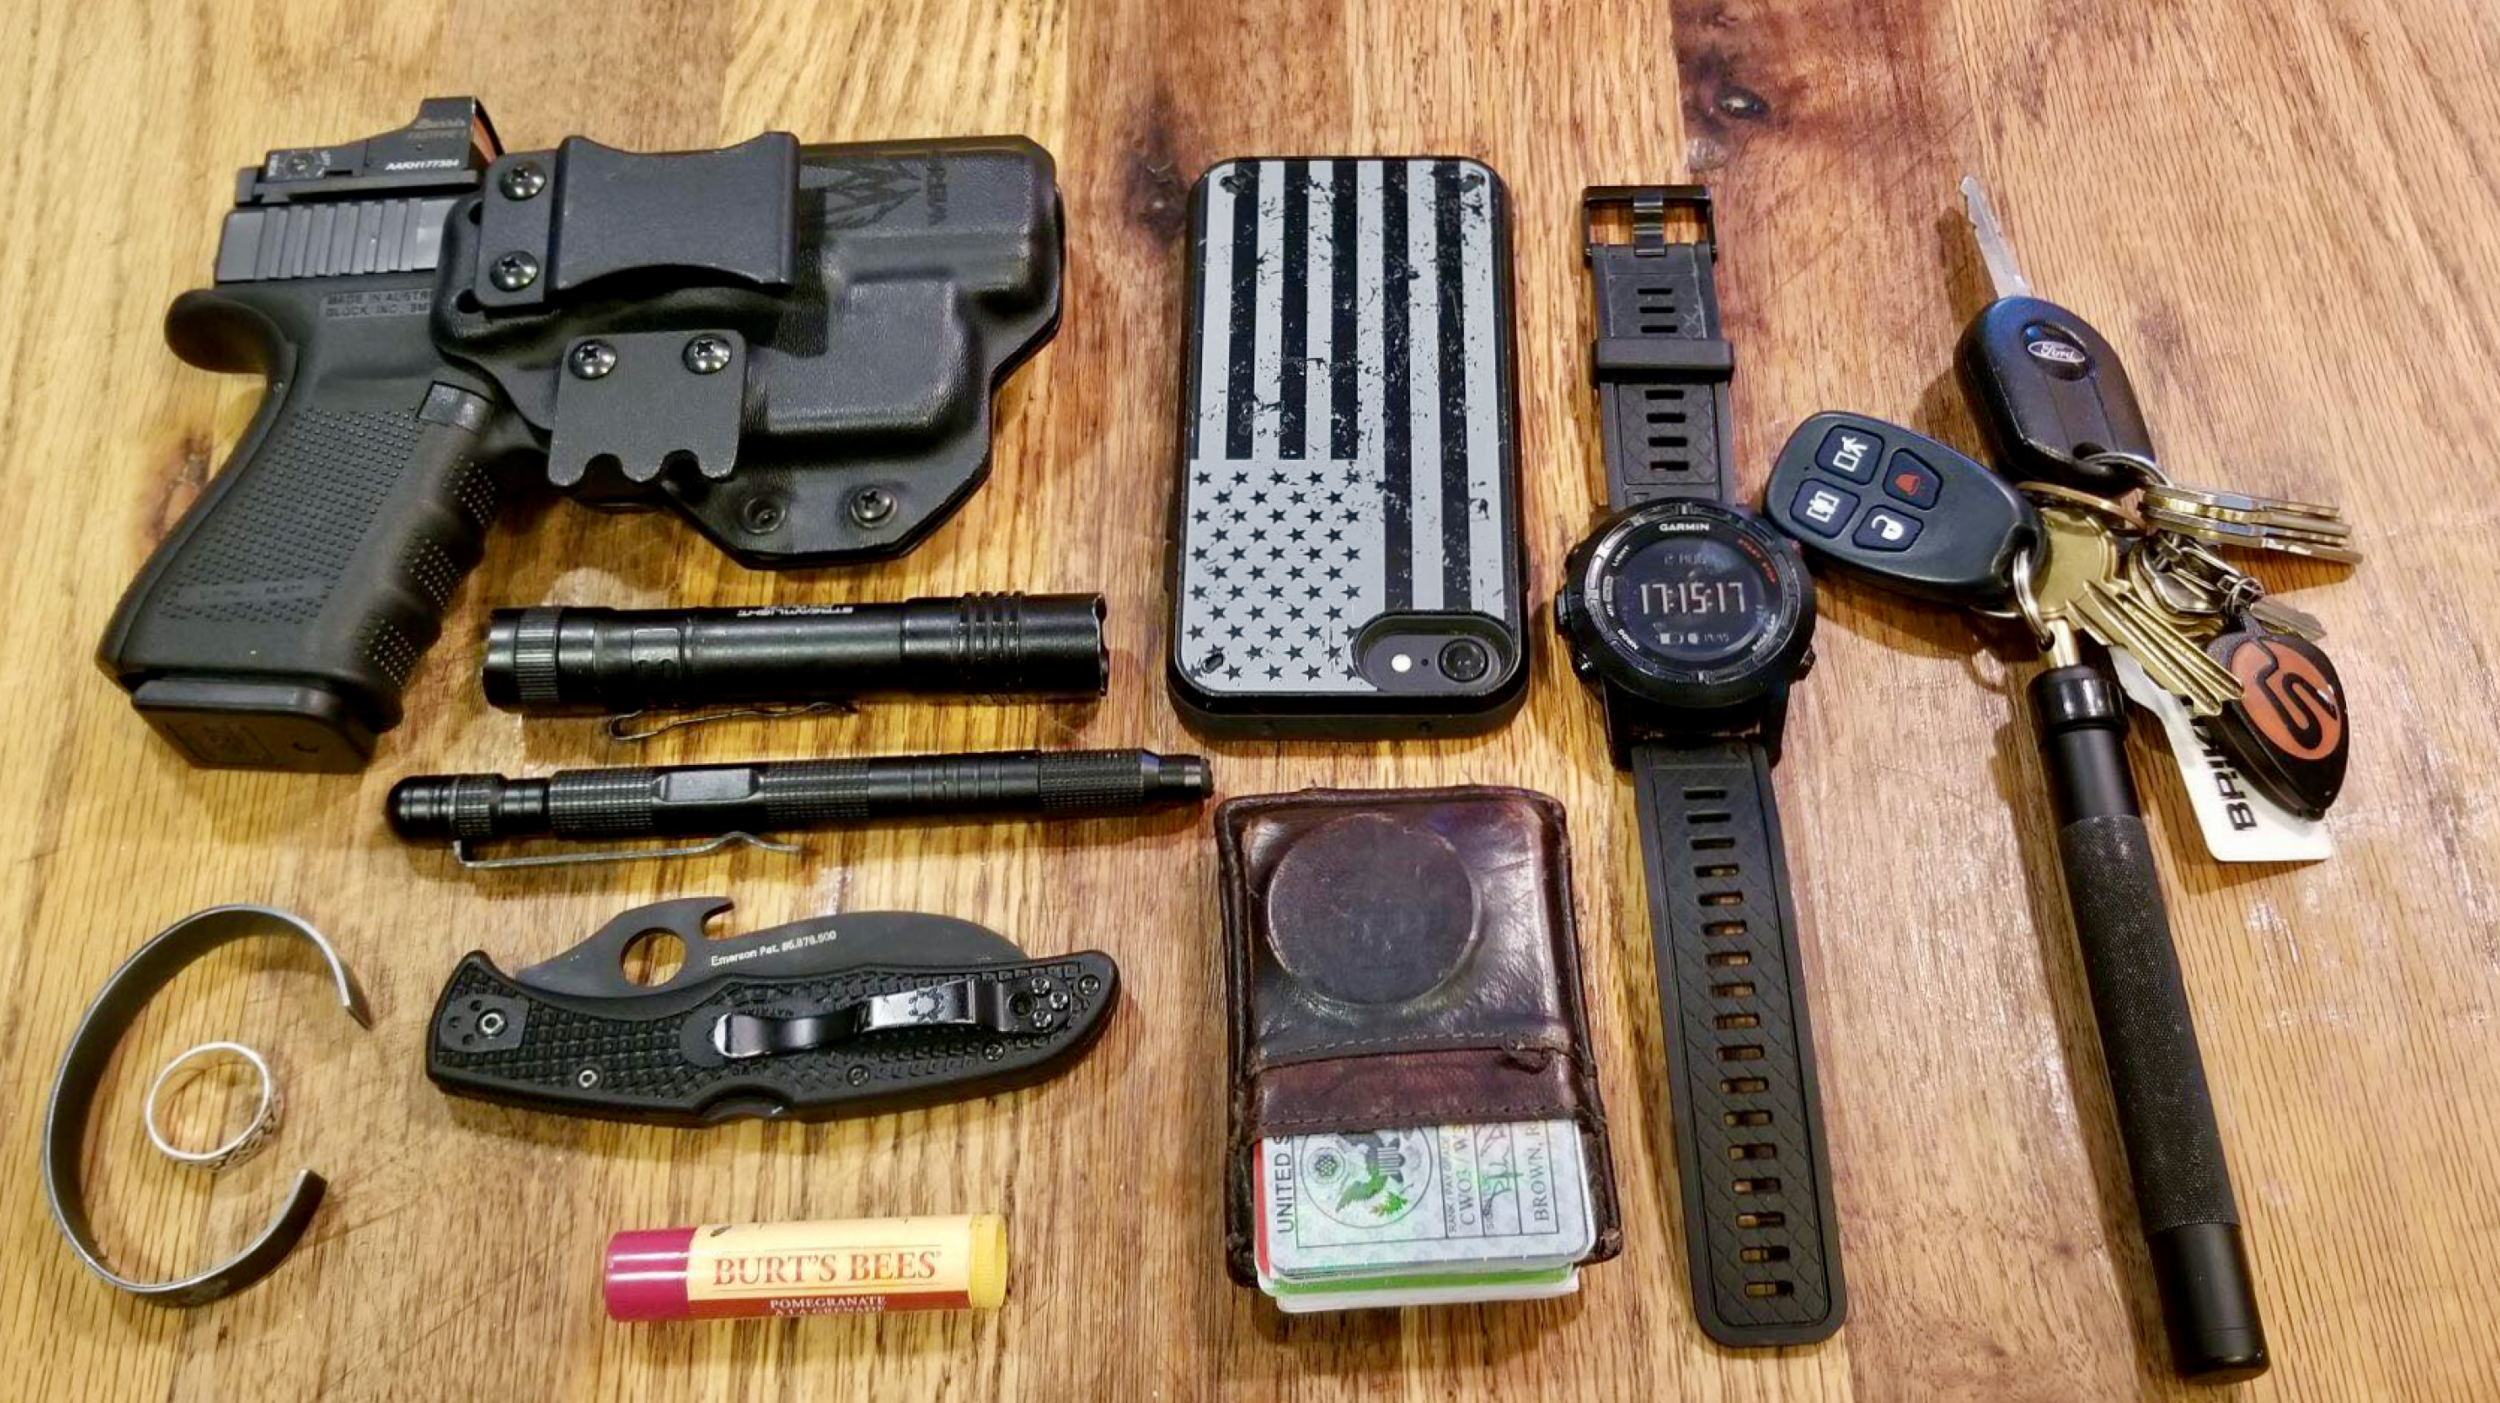 Rich's everyday carry items.